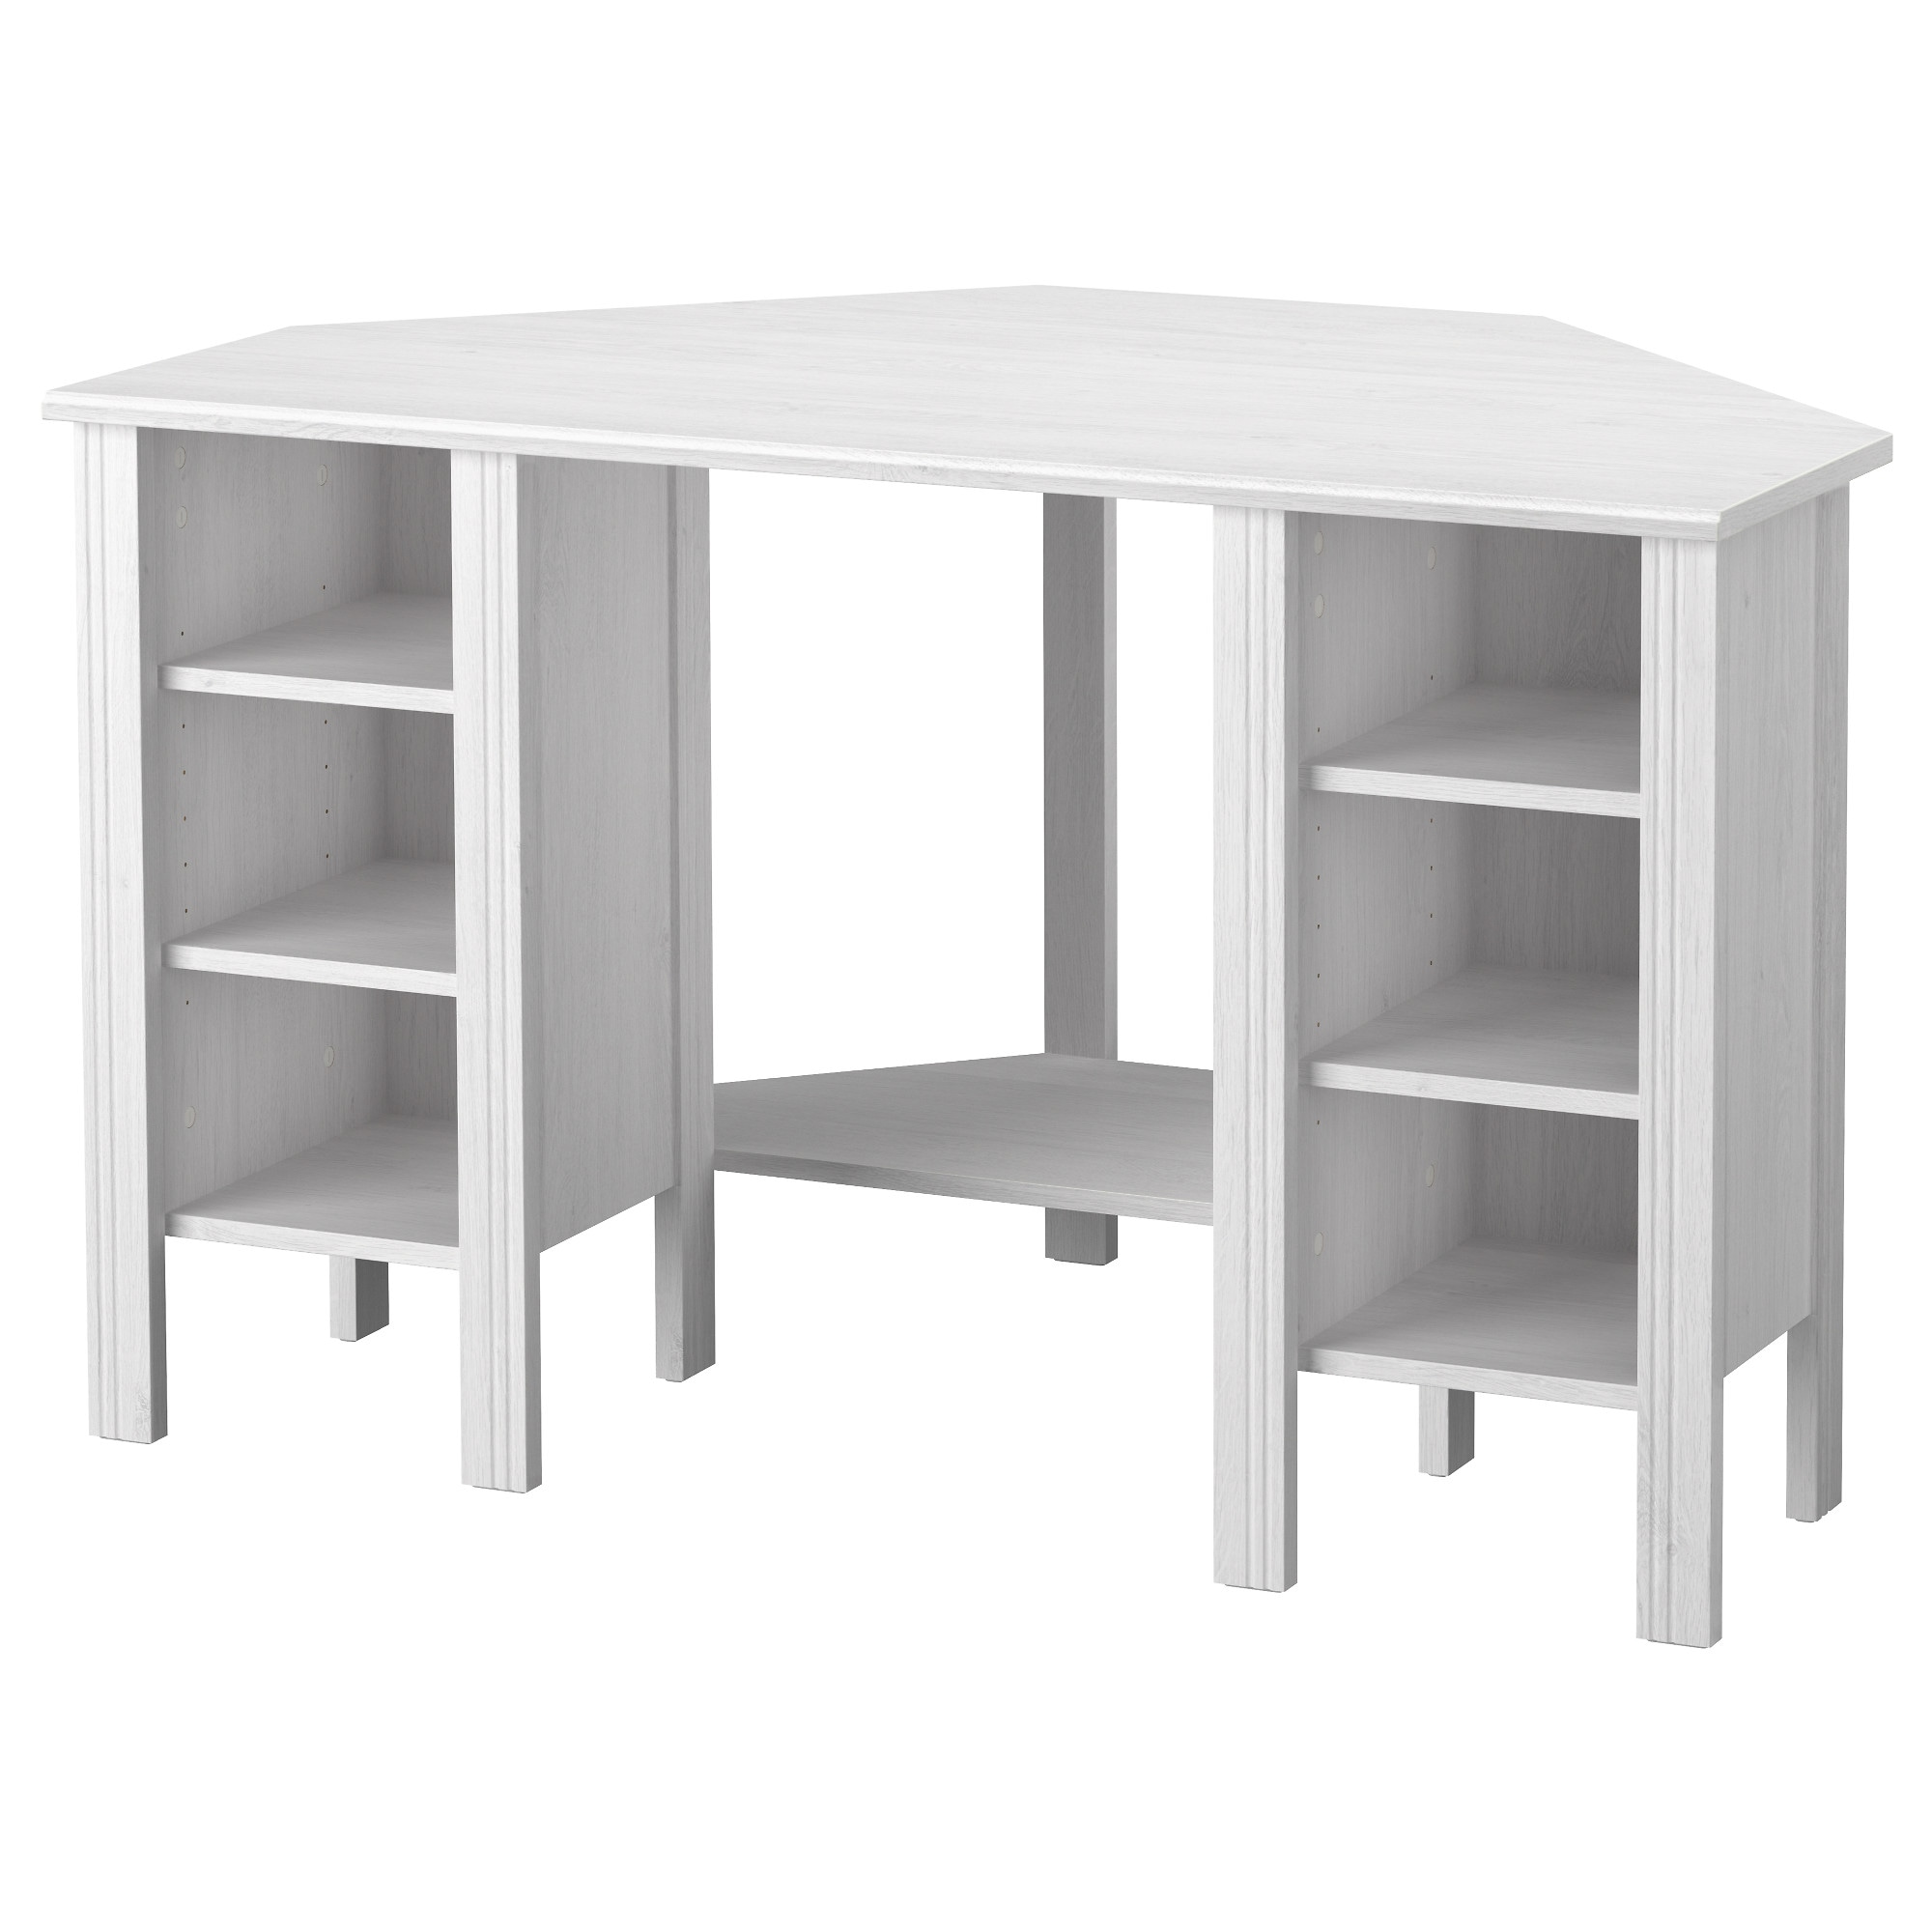 Corner desk BRUSALI white